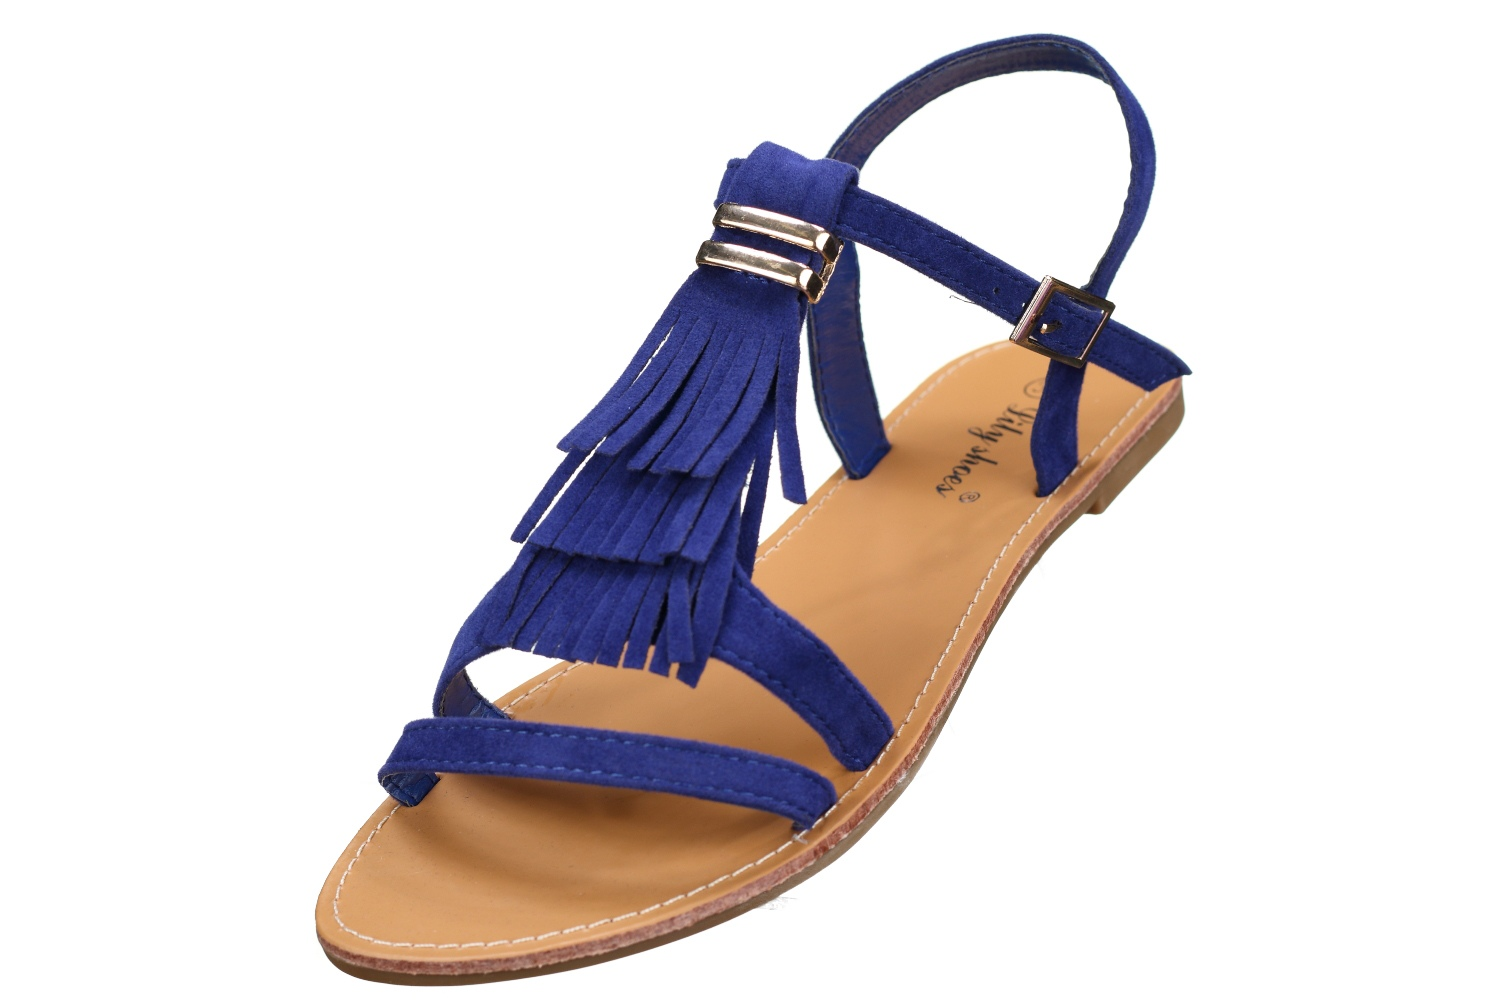 http://www.leadermode.com/143947/lily-shoes-l322-blue.jpg